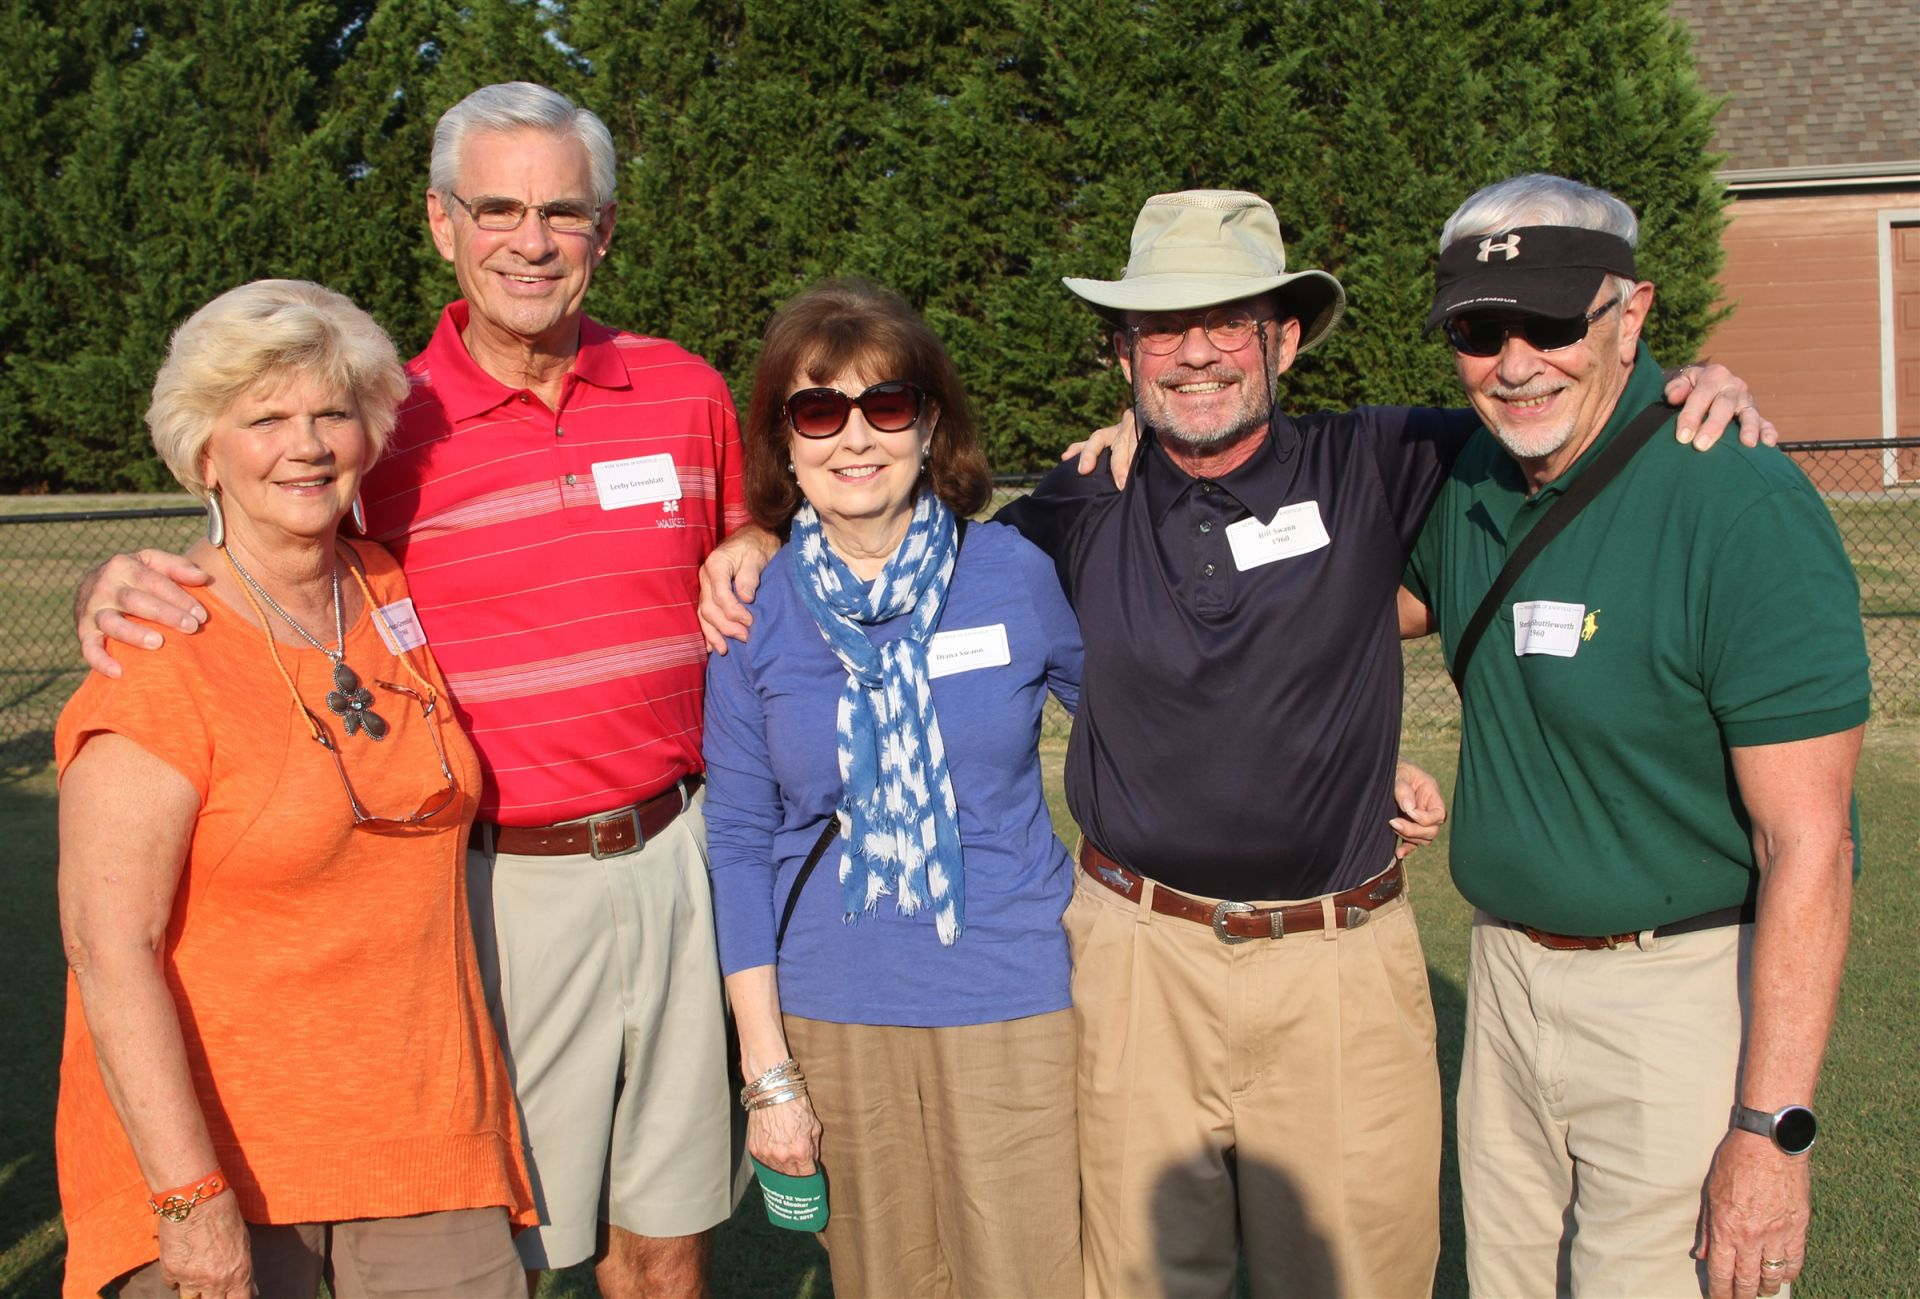 Members of the Class of 1960 at our Spartan Alumni Weekend Tailgate